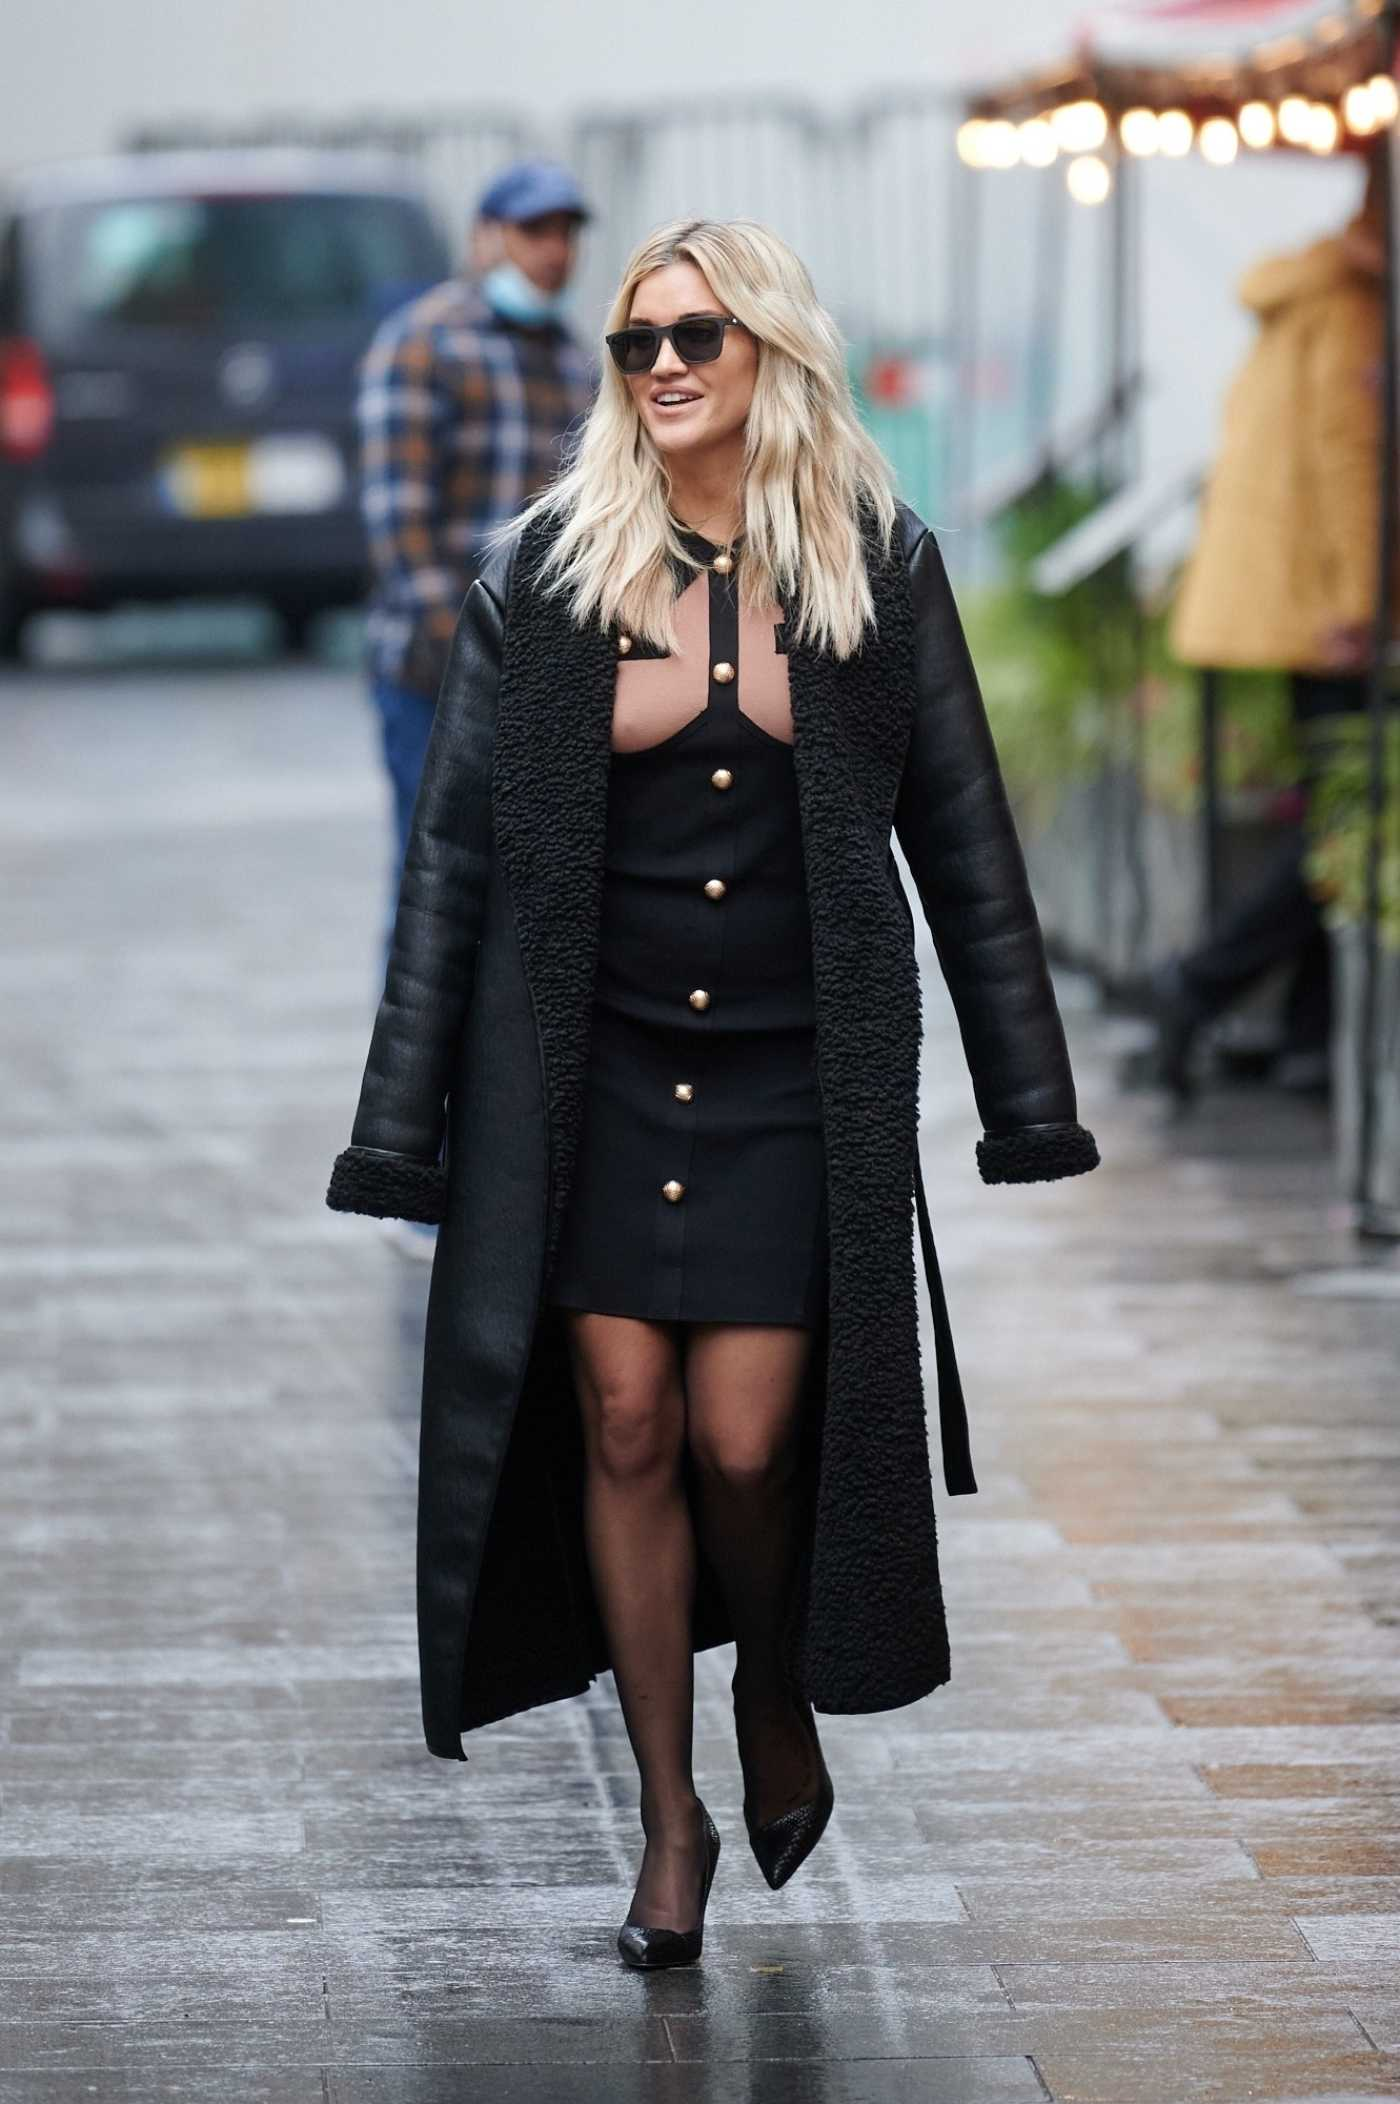 Ashley Roberts in a Black Leather Coat Leaves the Global Studios in London 12/11/2020